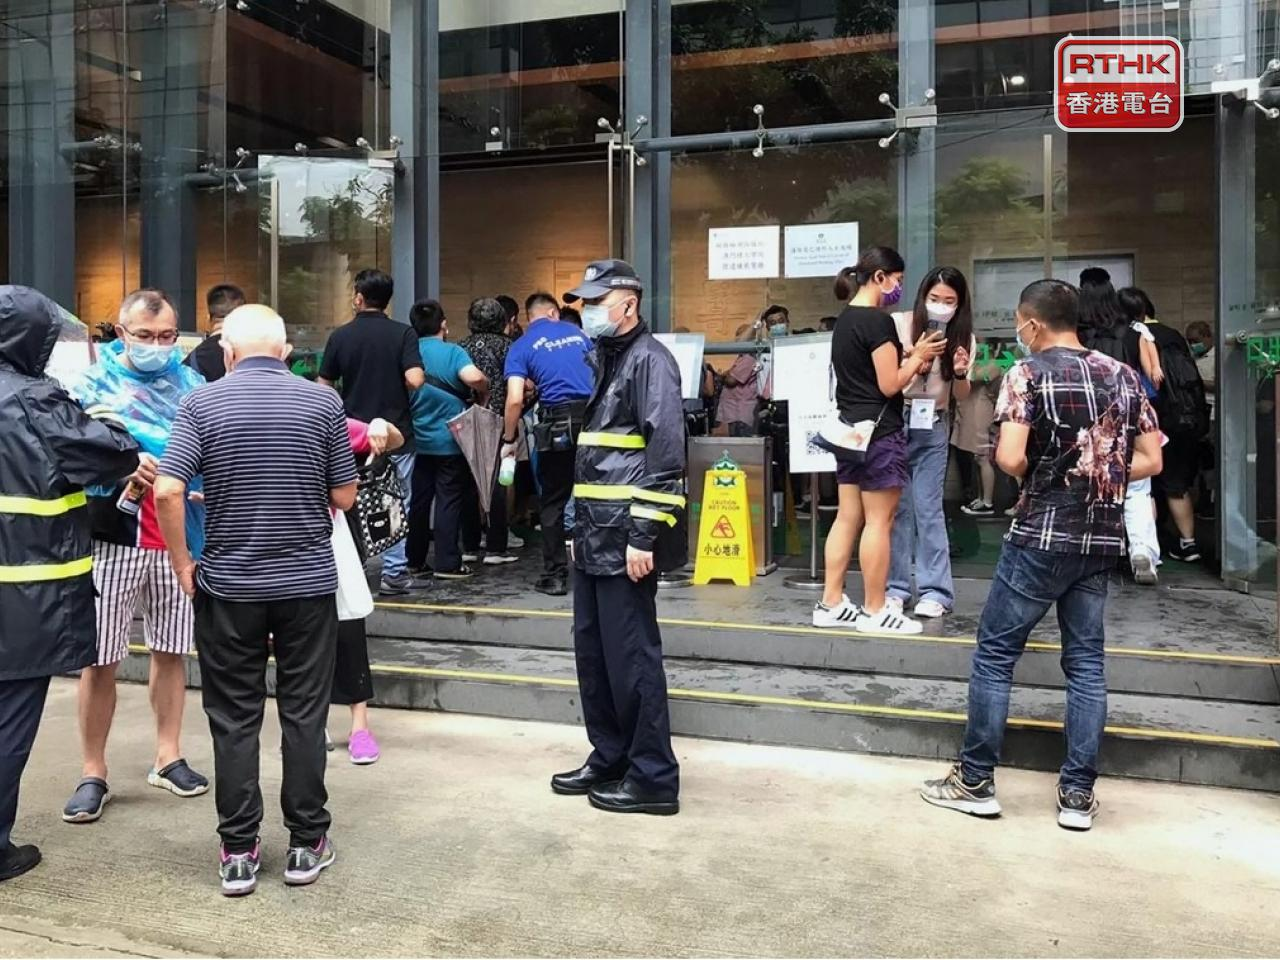 Macau residents have been ordered to get Covid tests after a cluster of cases involving one family. Photo: RTHK